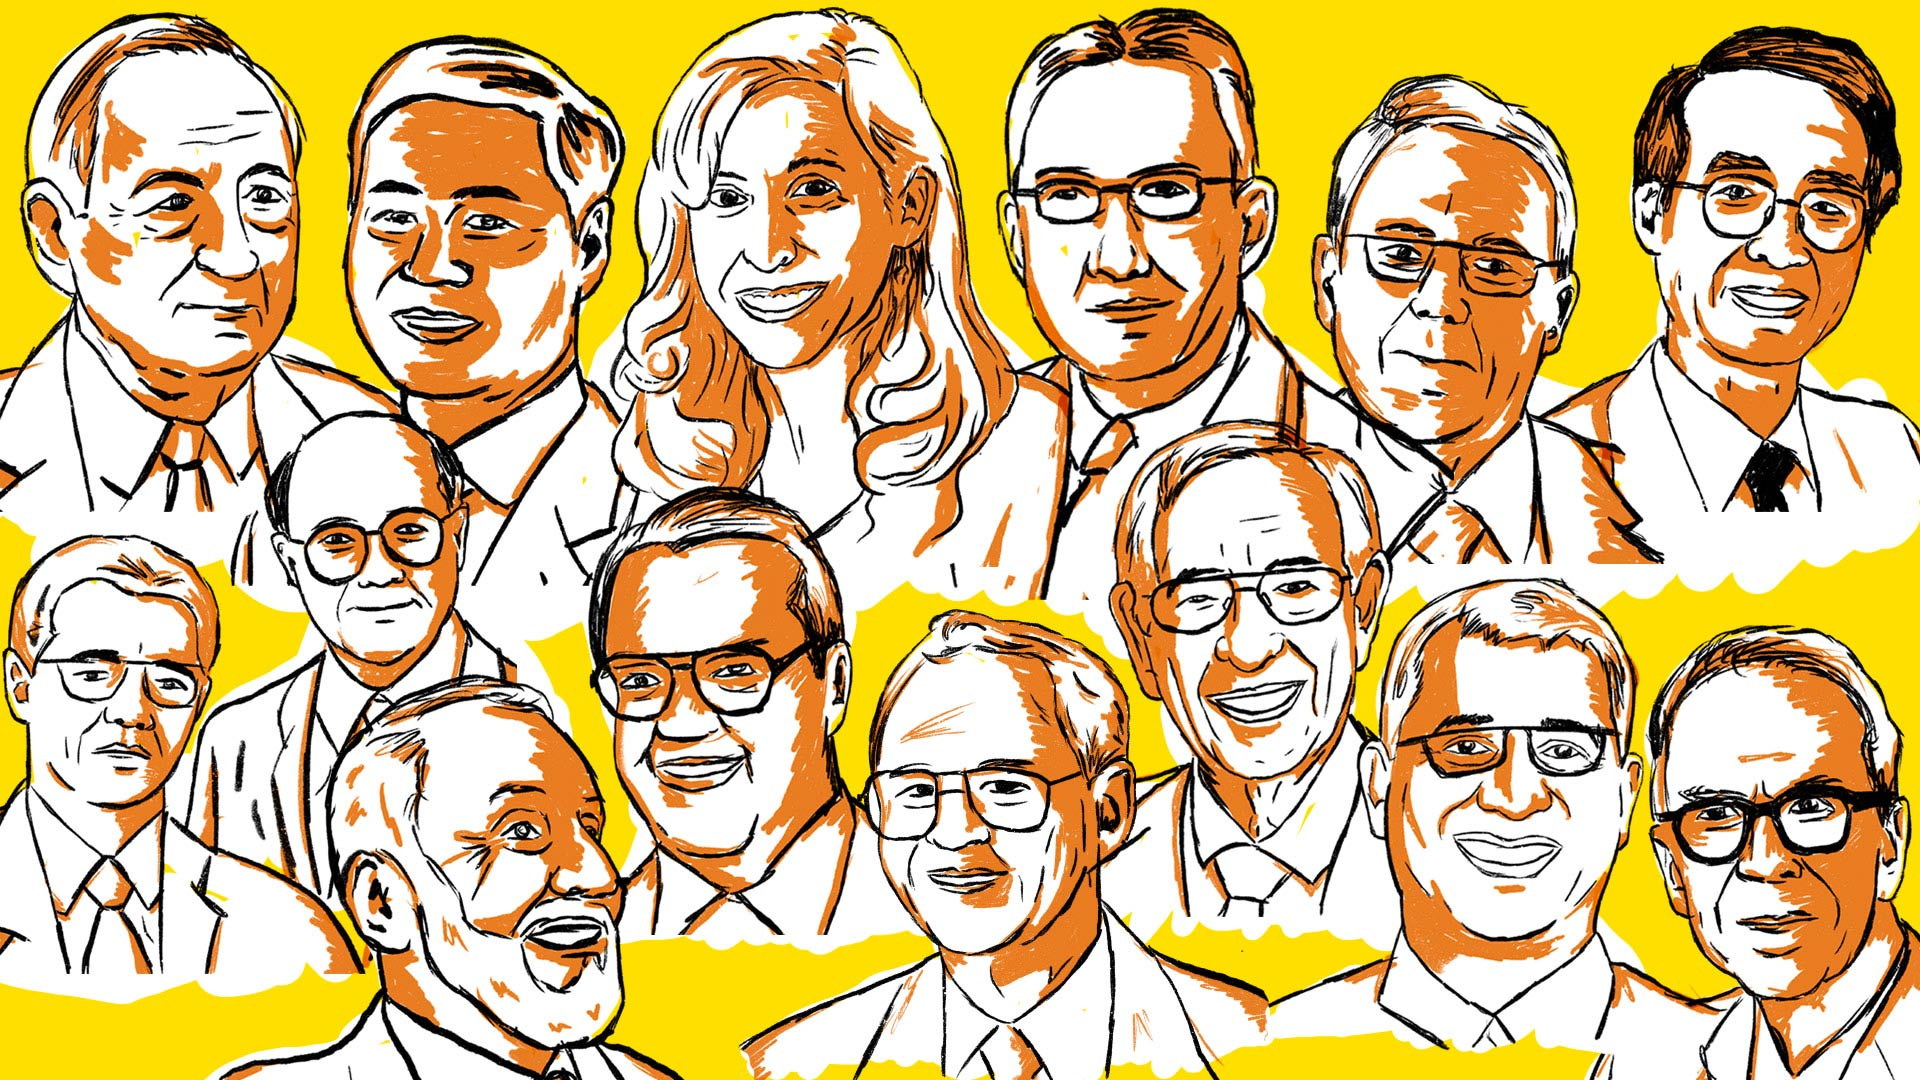 Stylized illustration of headshots for individuals in the Innovation Hall of Fame. Yellow background, with black outlines, and amber shading.